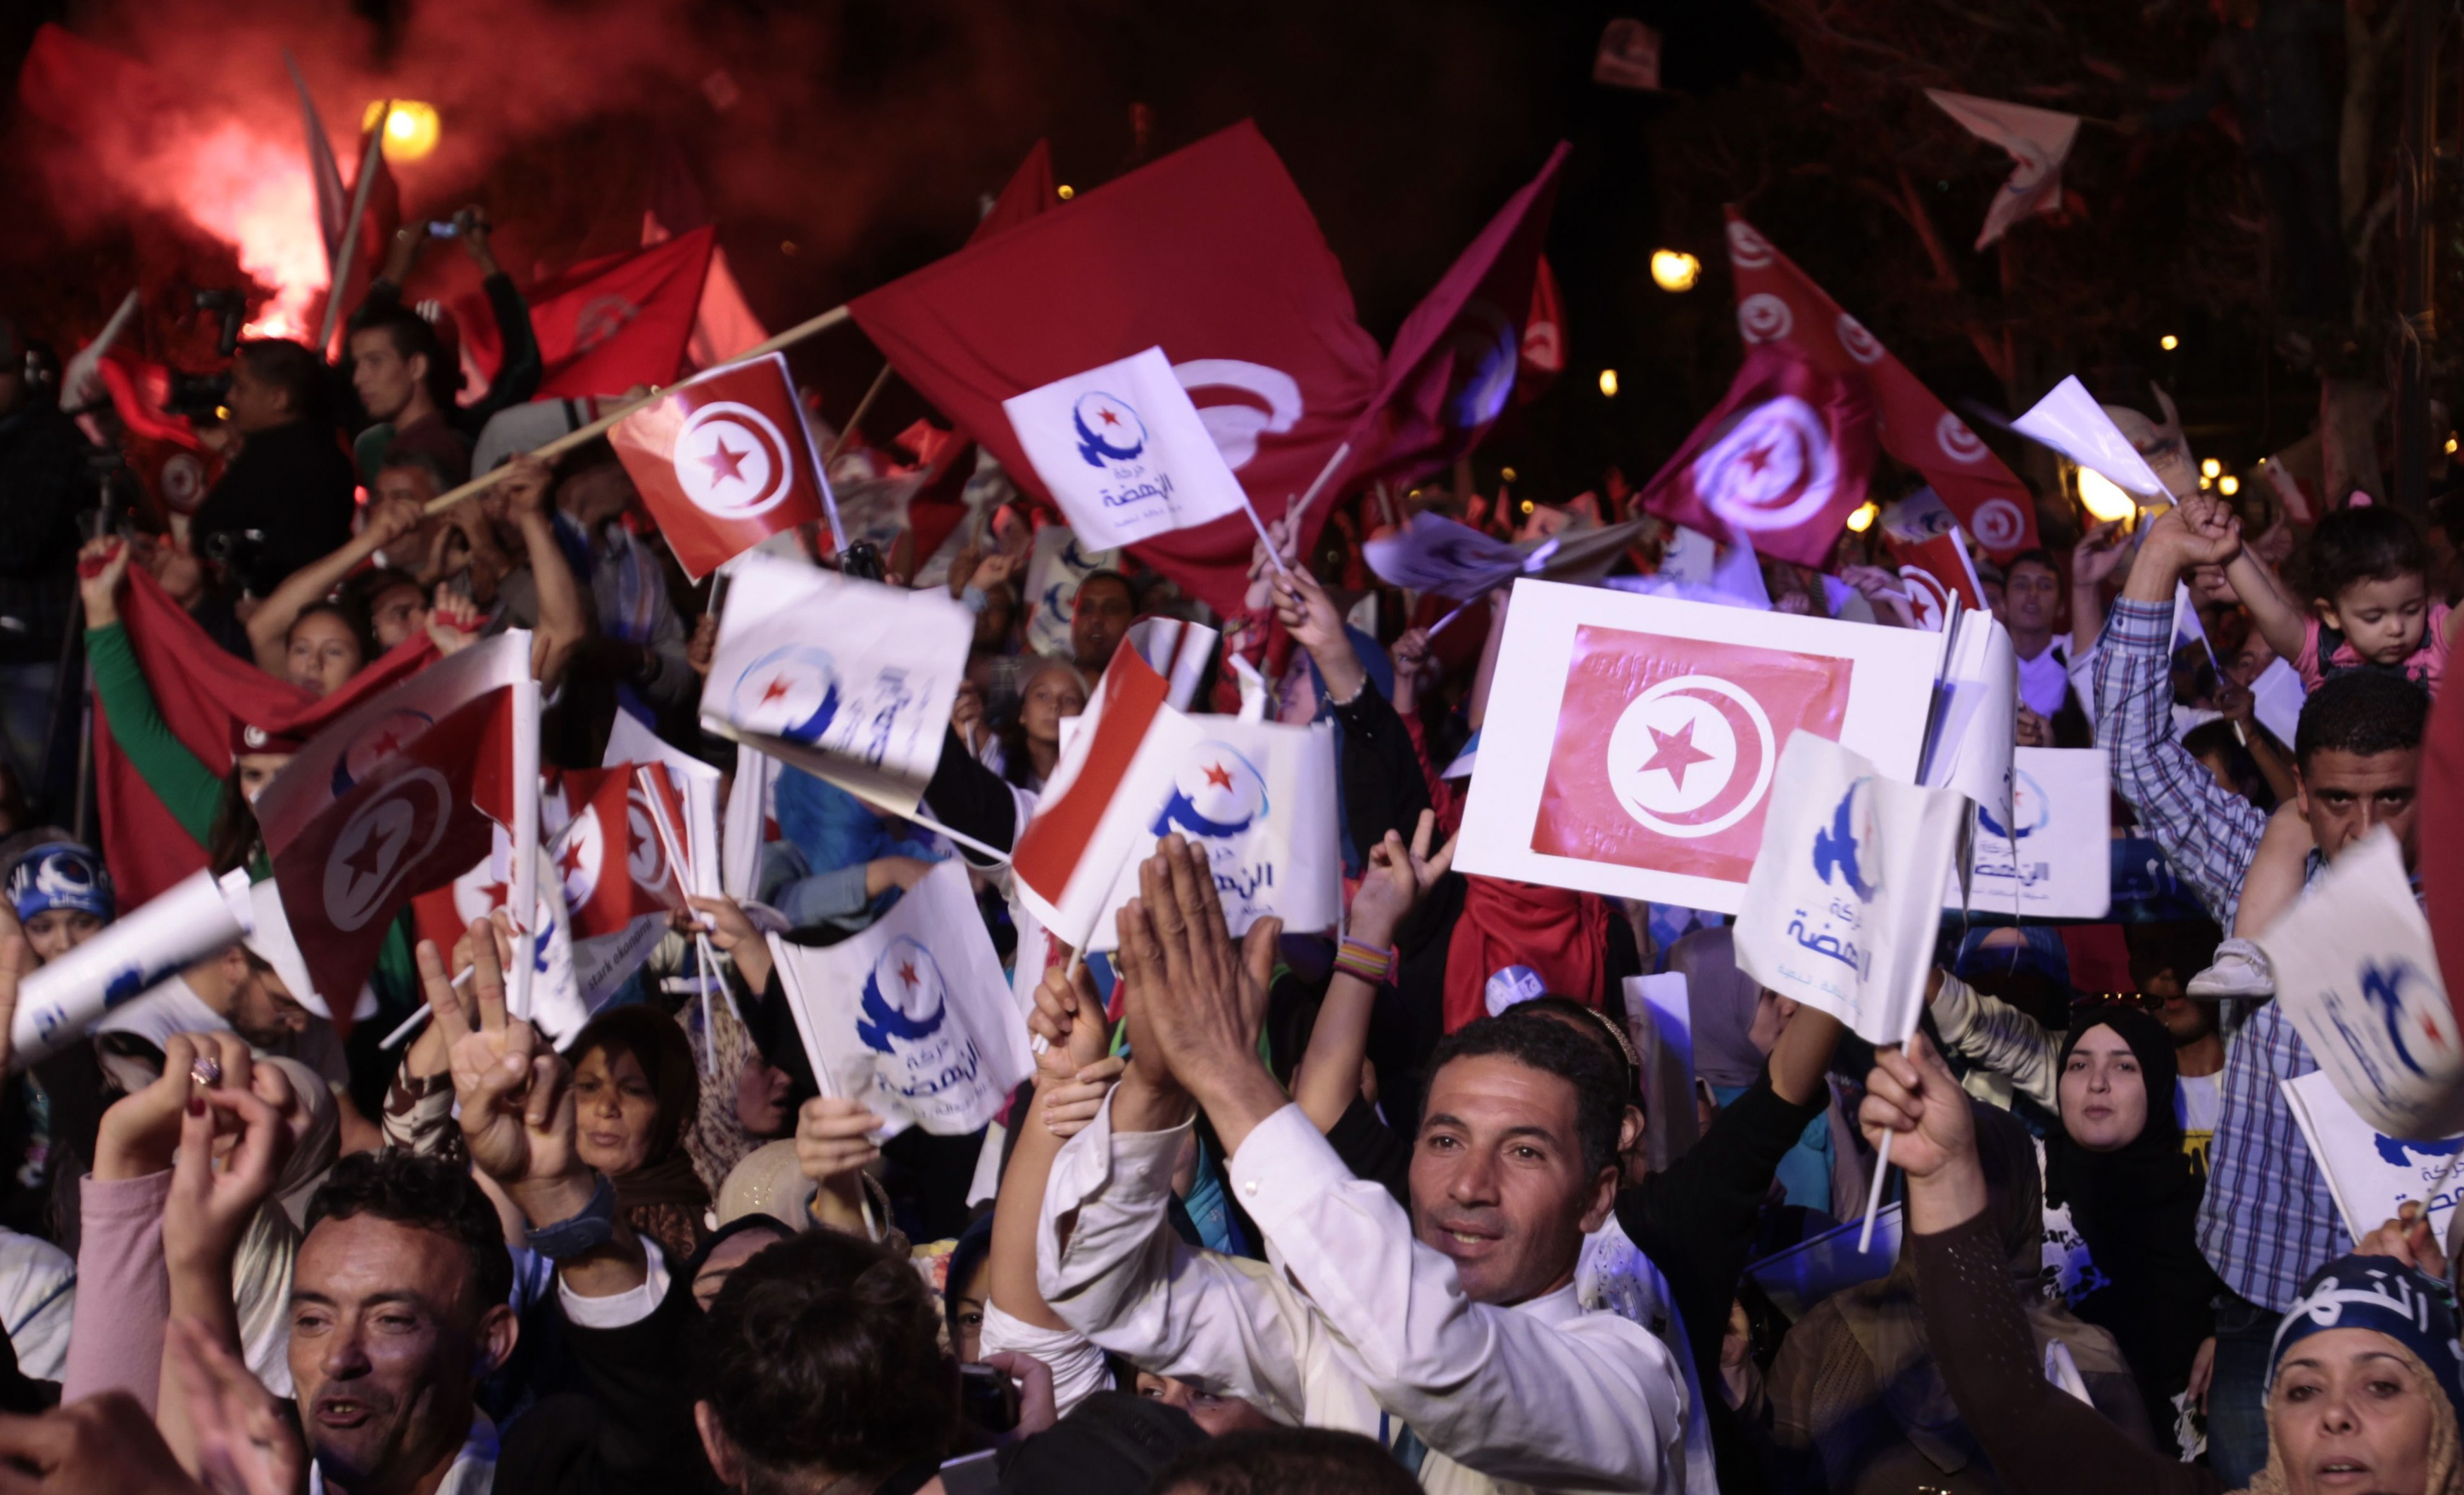 Supporters of the Islamist Ennahda movement wave party flags during a campaign event in Tunis October 24, 2014. Tunisia will hold parliamentary elections on October 26 and a presidential ballot in November. REUTERS/Zoubeir Souissi